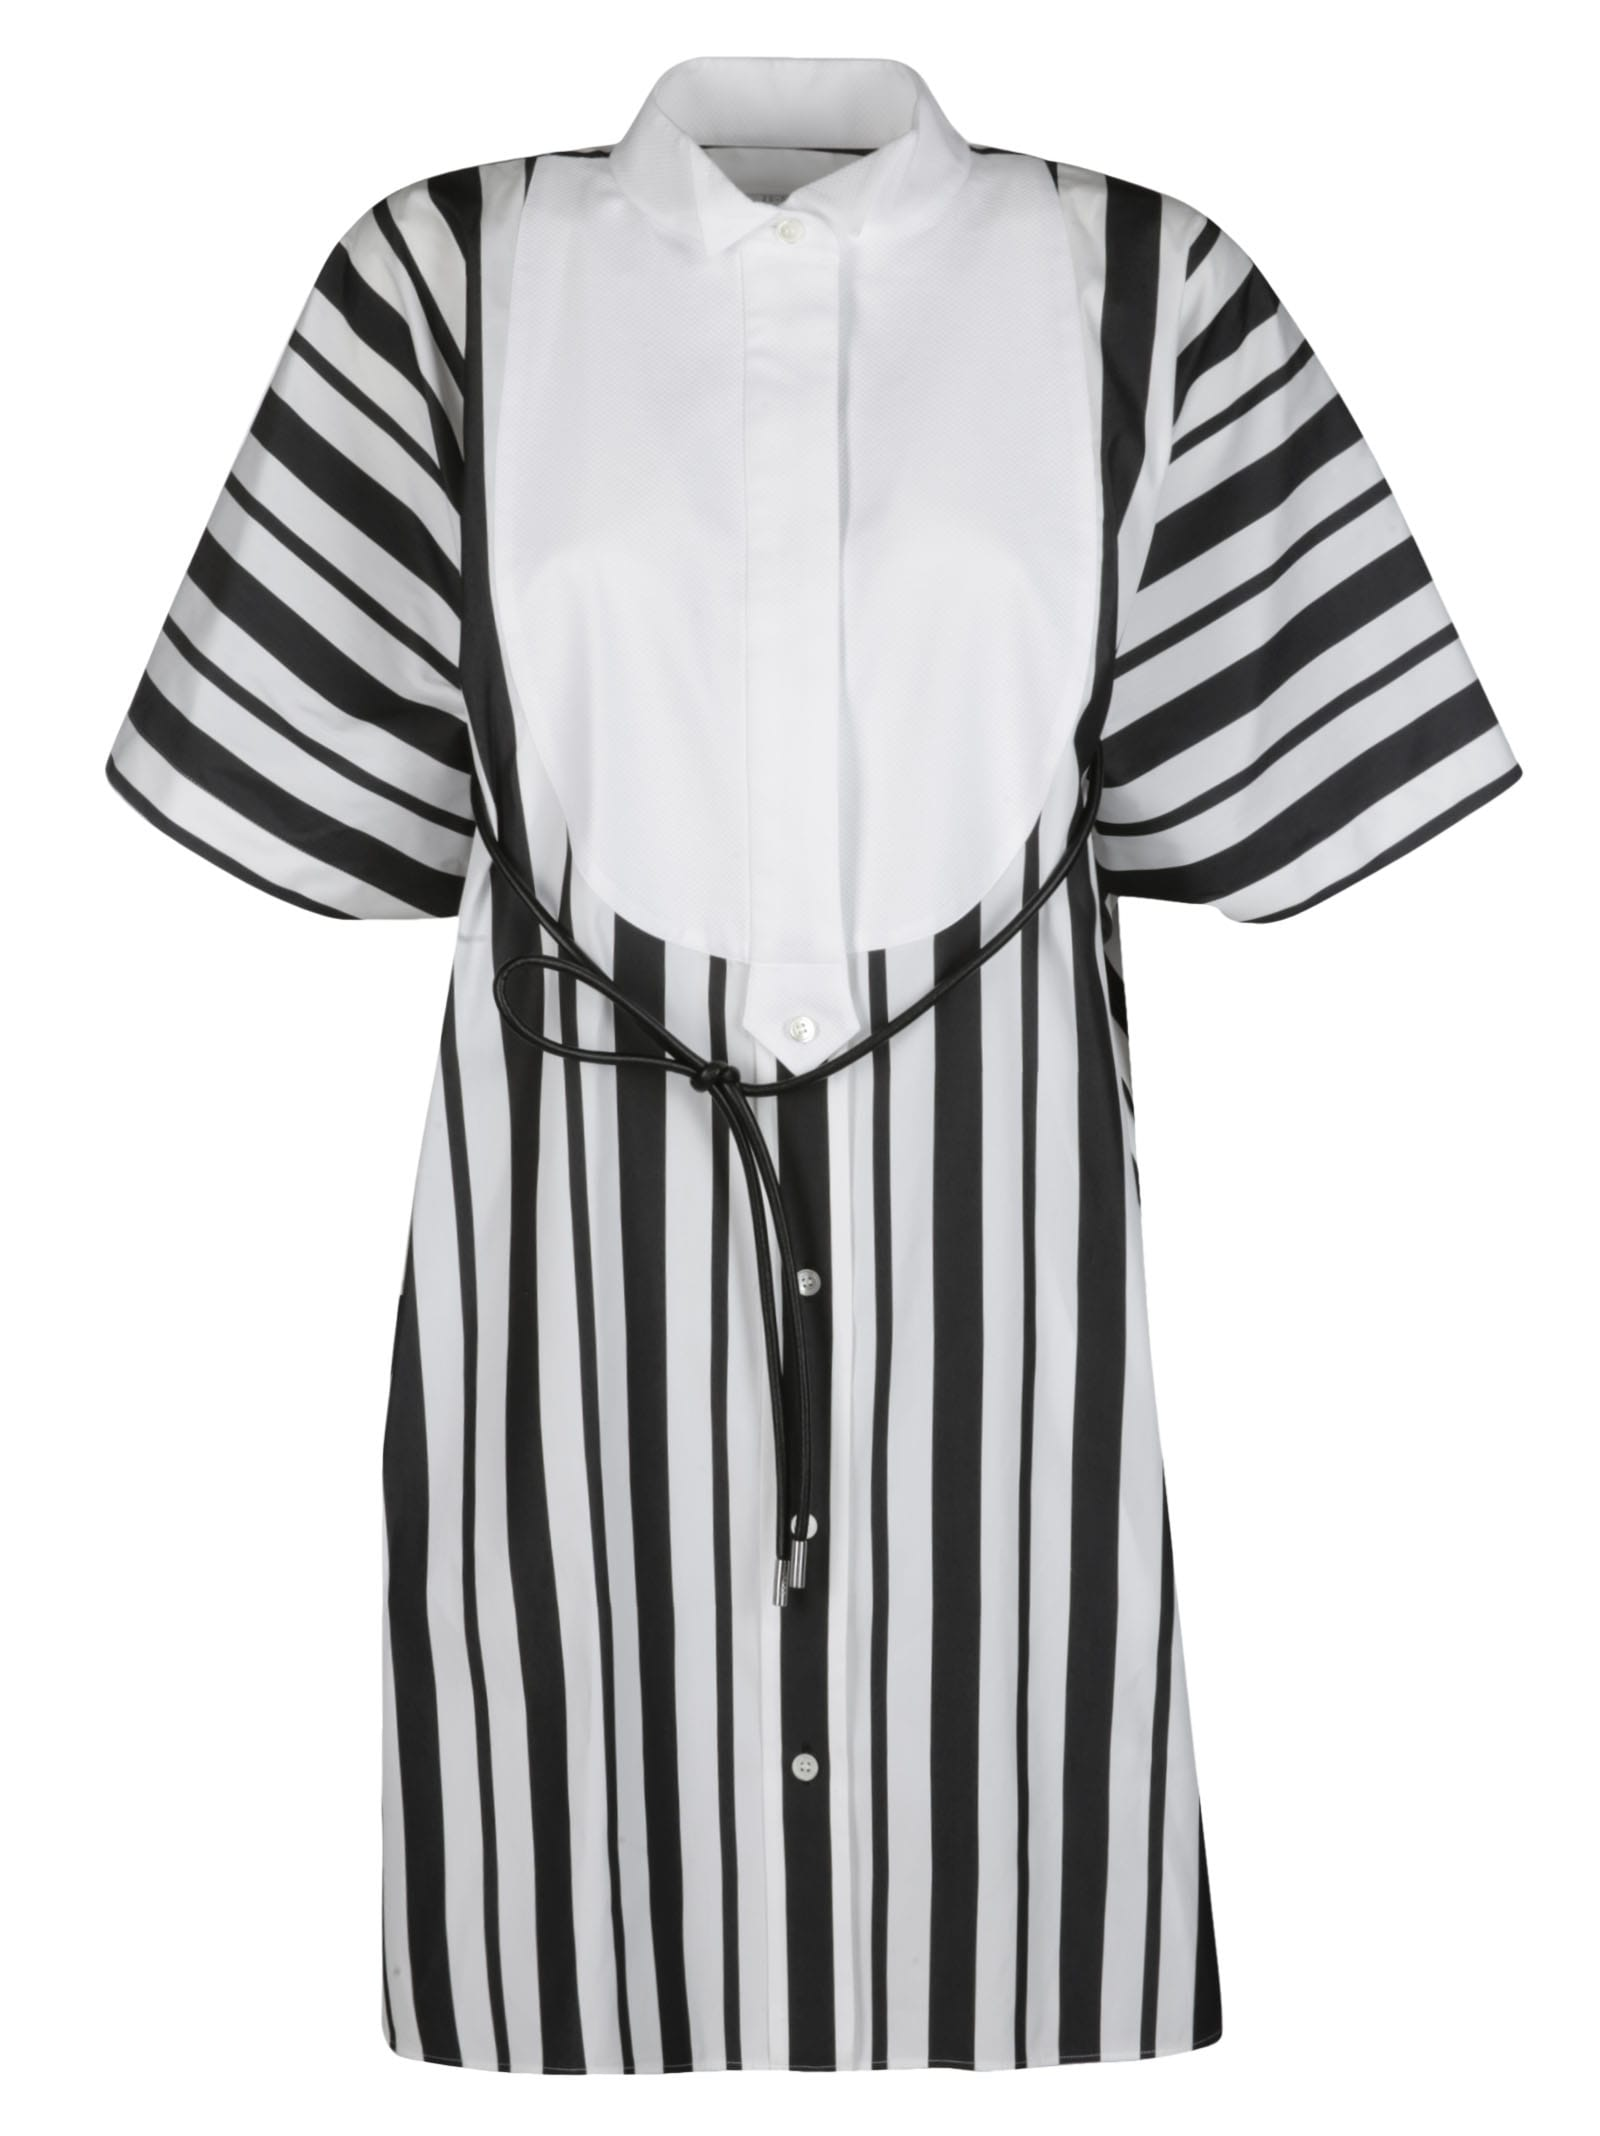 Buy Sacai Black And White Cotton Blend Dress online, shop Sacai with free shipping